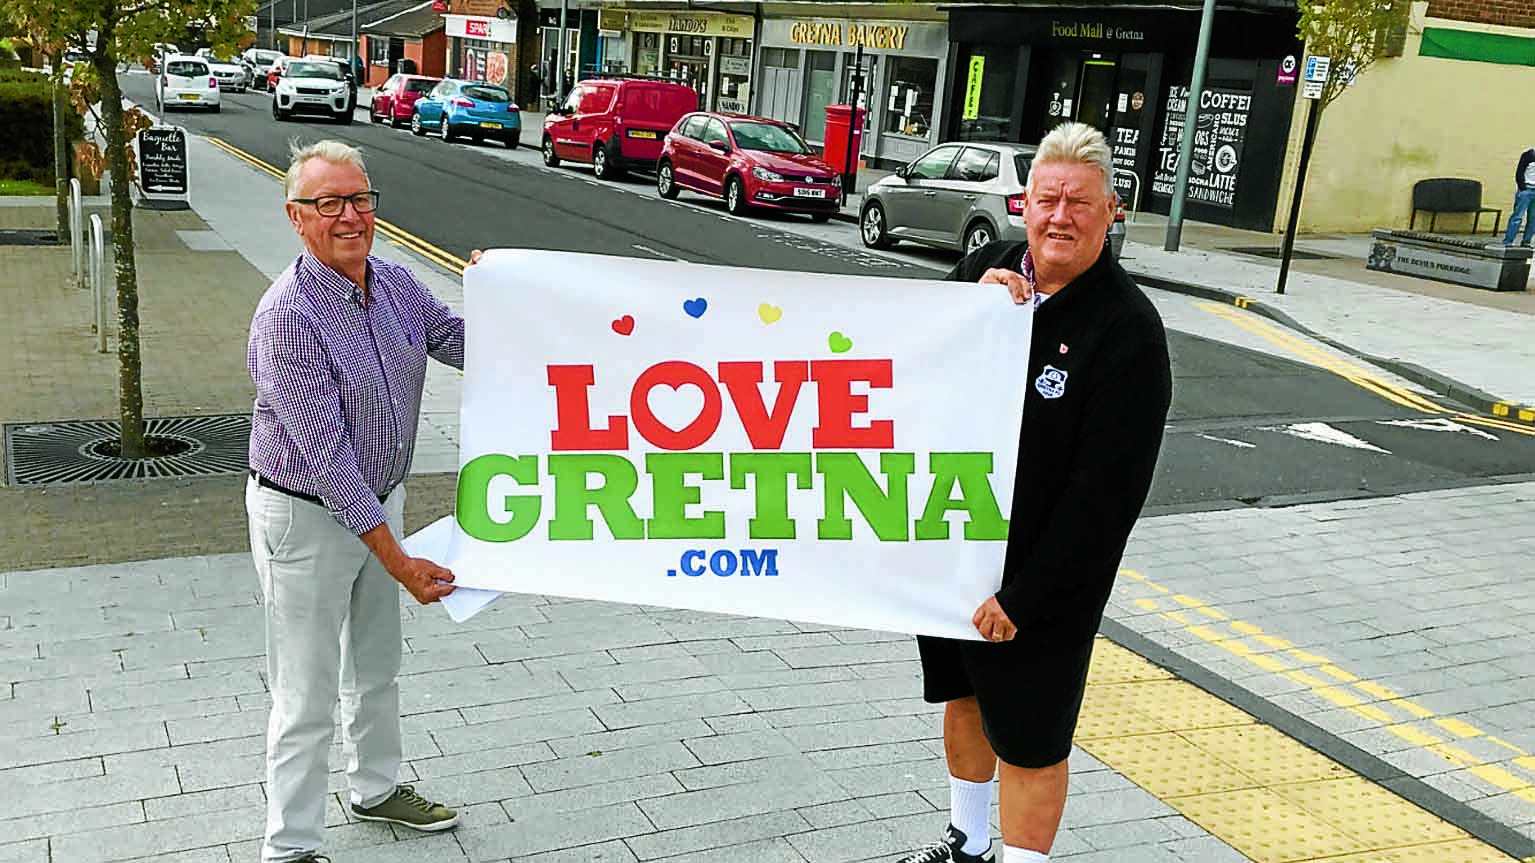 Public urged to fall in love with Gretna